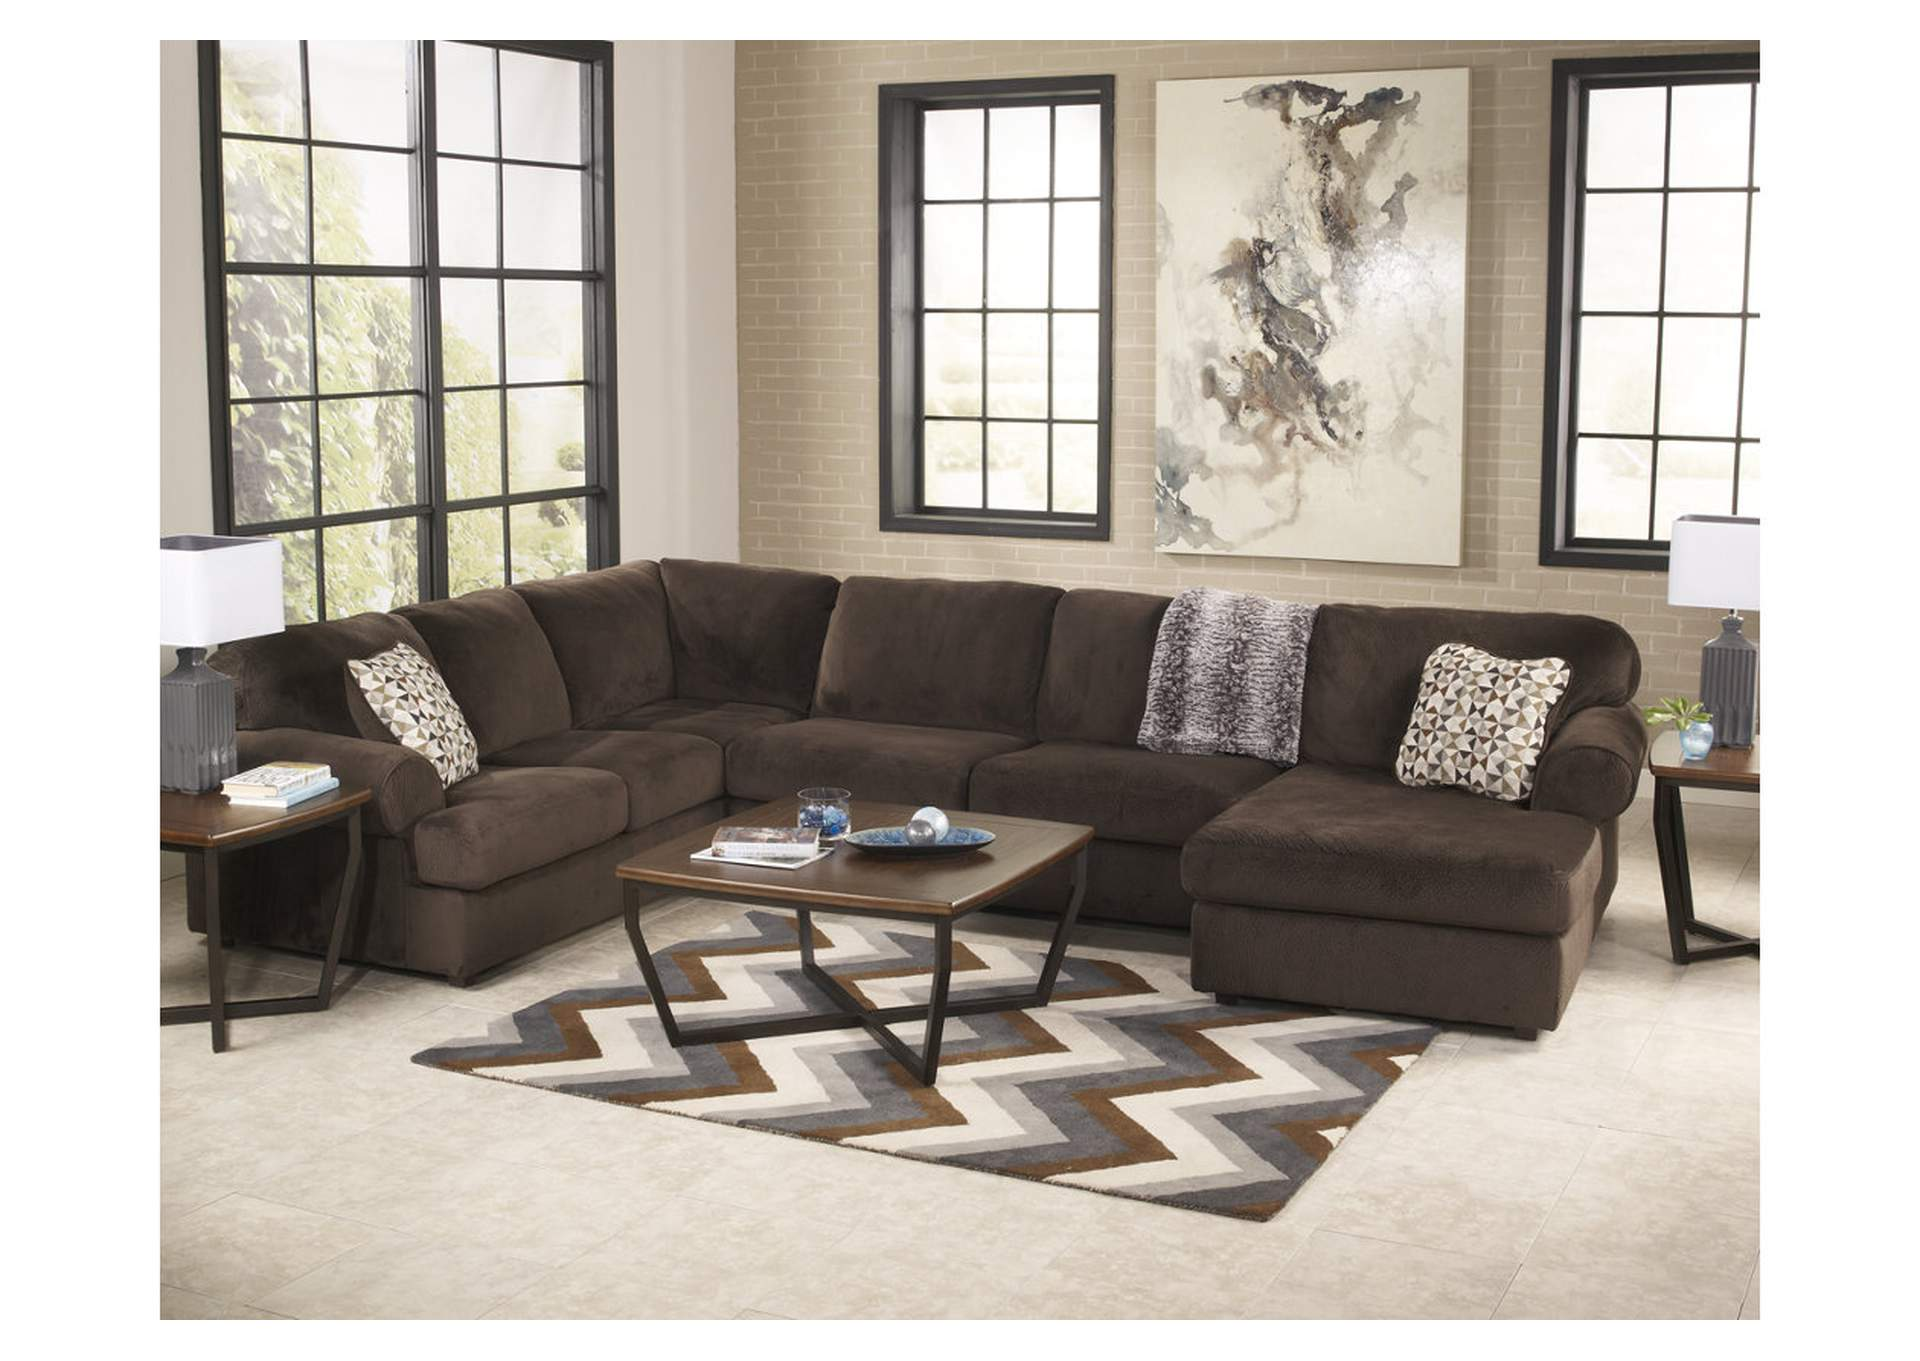 Jessa Place Chocolate Right Facing Chaise Sectional,ABF Signature Design by Ashley